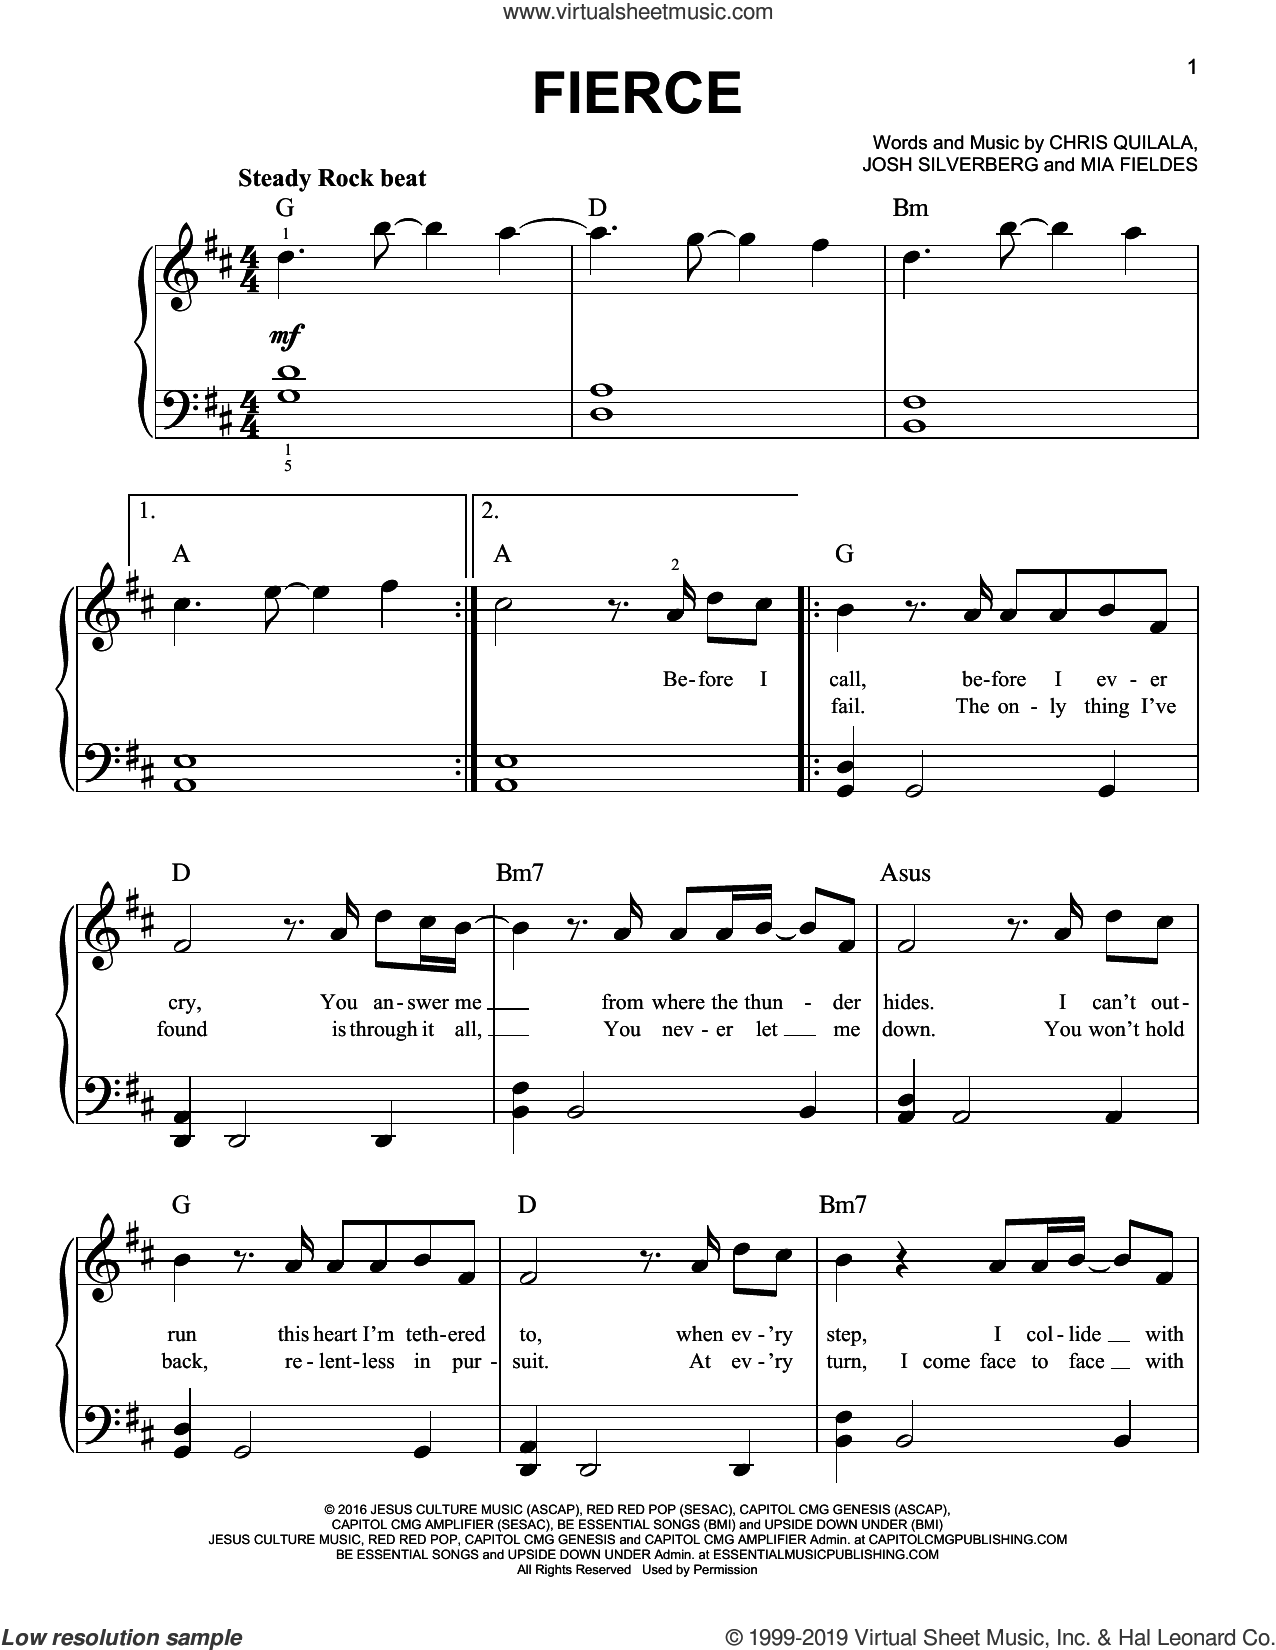 Fierce sheet music for piano solo by Jesus Culture, Chris Quilala, Josh Silverberg and Mia Fieldes, easy skill level